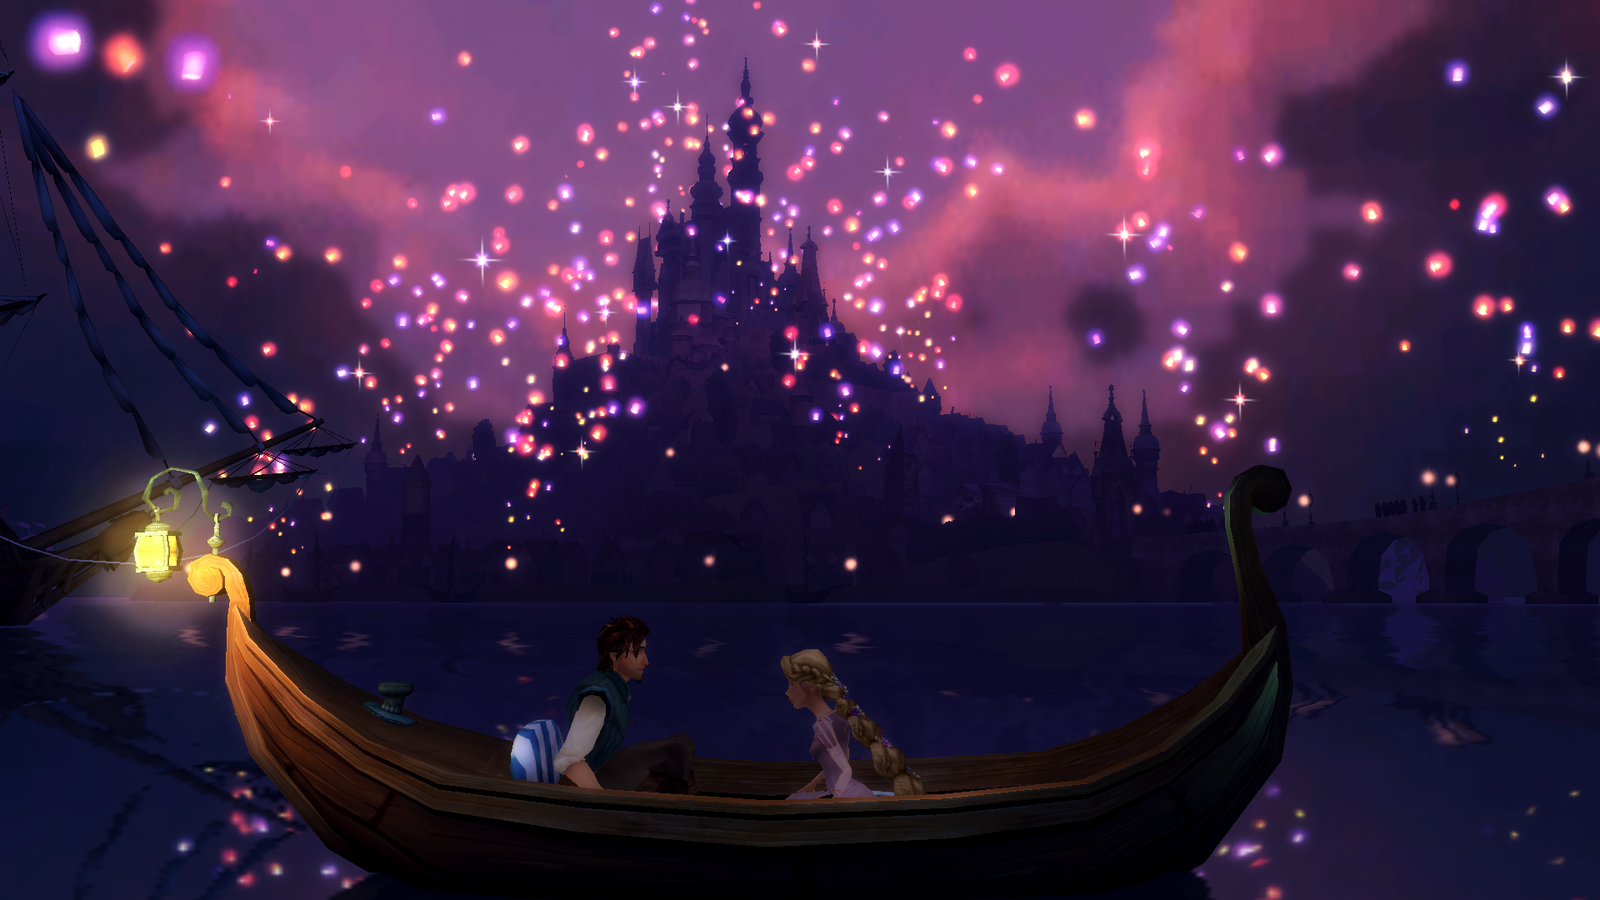 Tangled Lanterns Wallpaper Disney tangled by nylah22 1600x900